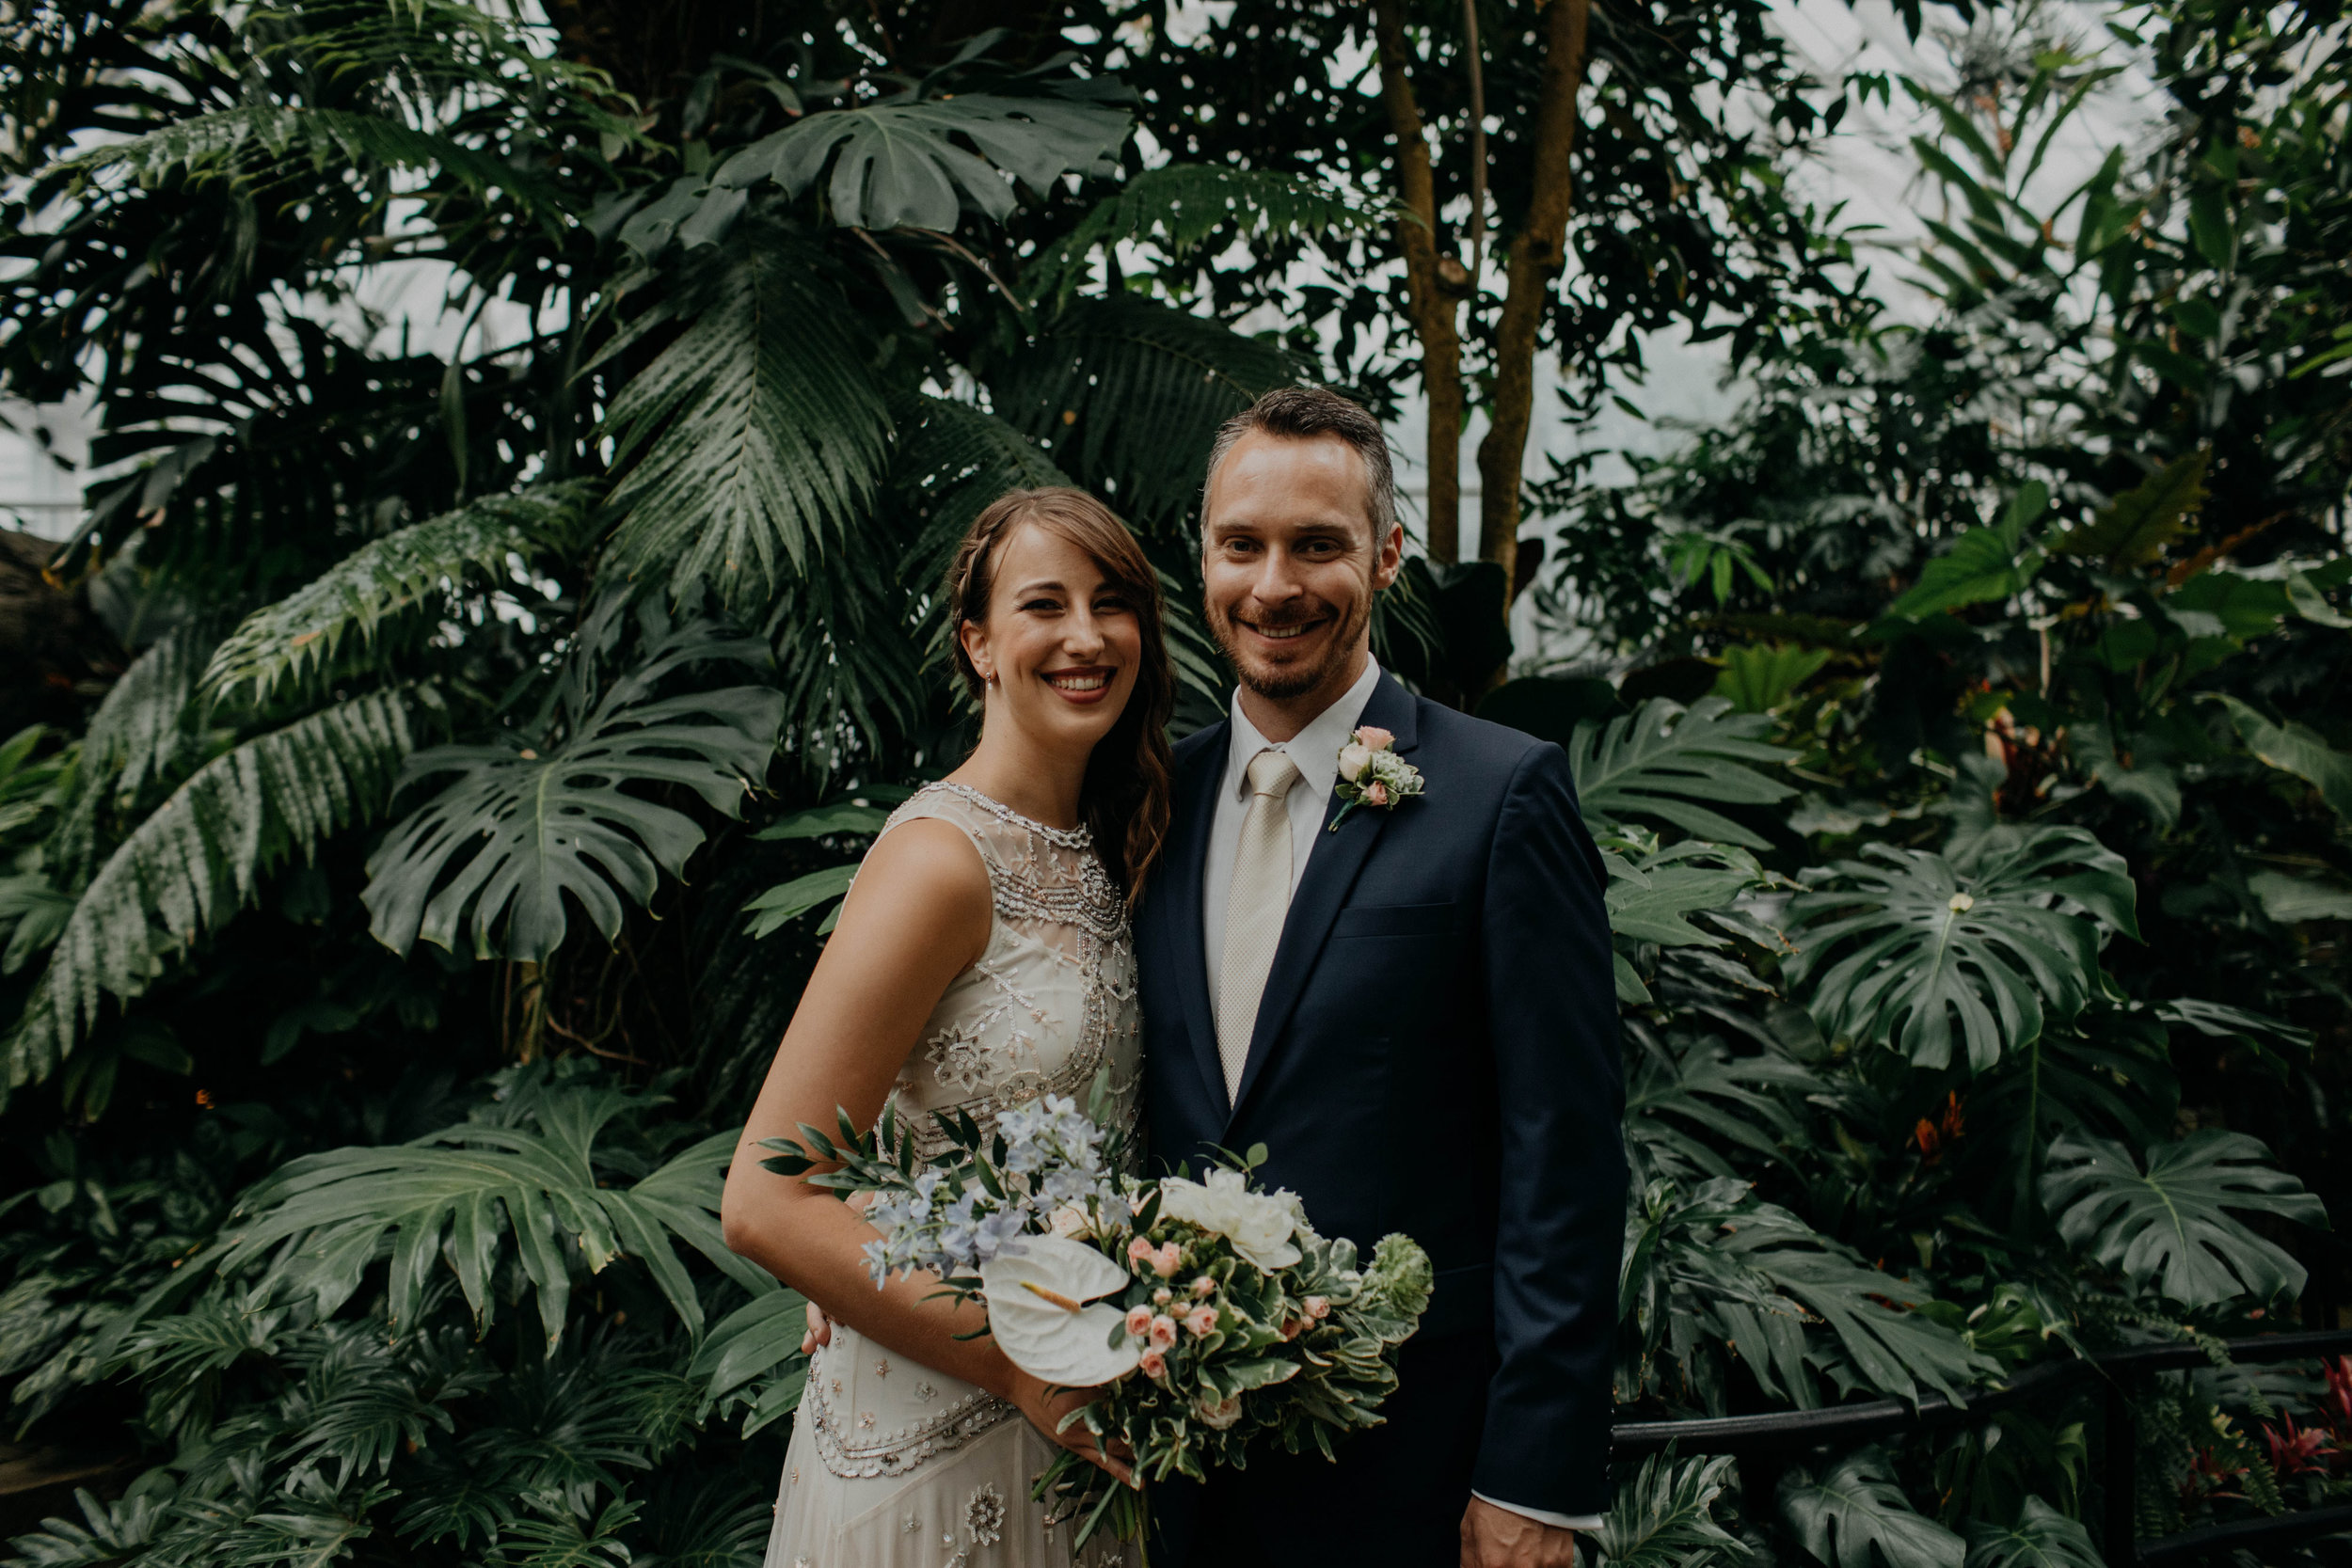 franklin park conservatory wedding columbus ohio wedding photographer grace e jones photography115.jpg